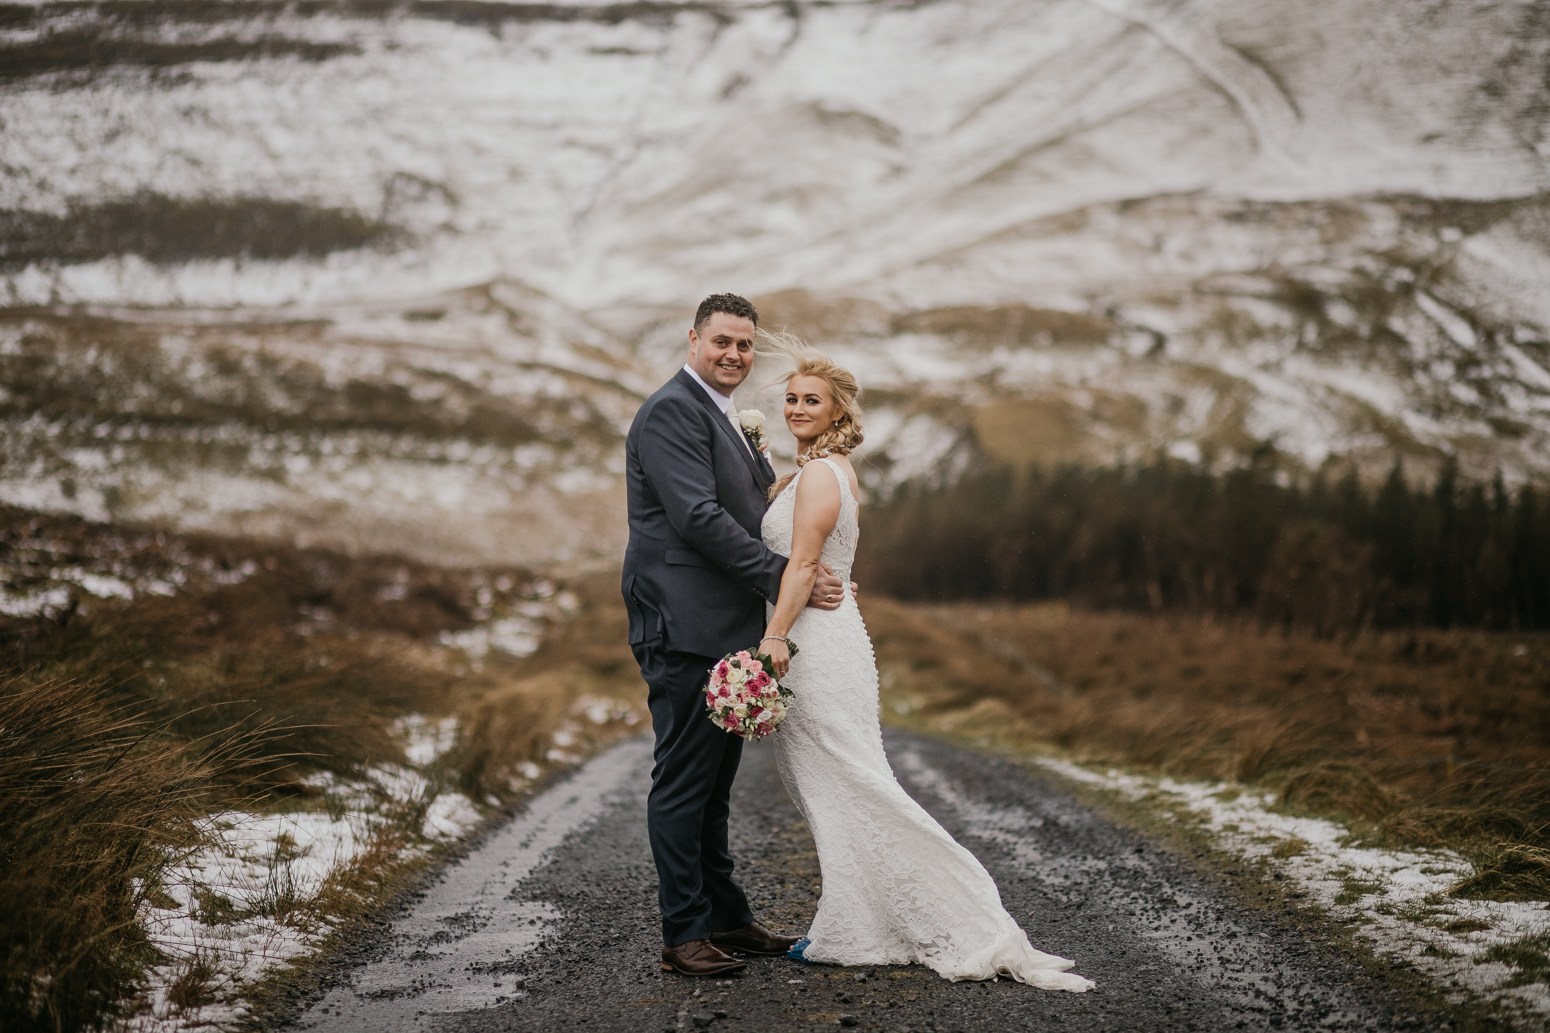 winter wedding - Photographer that takes natural photos and not posed